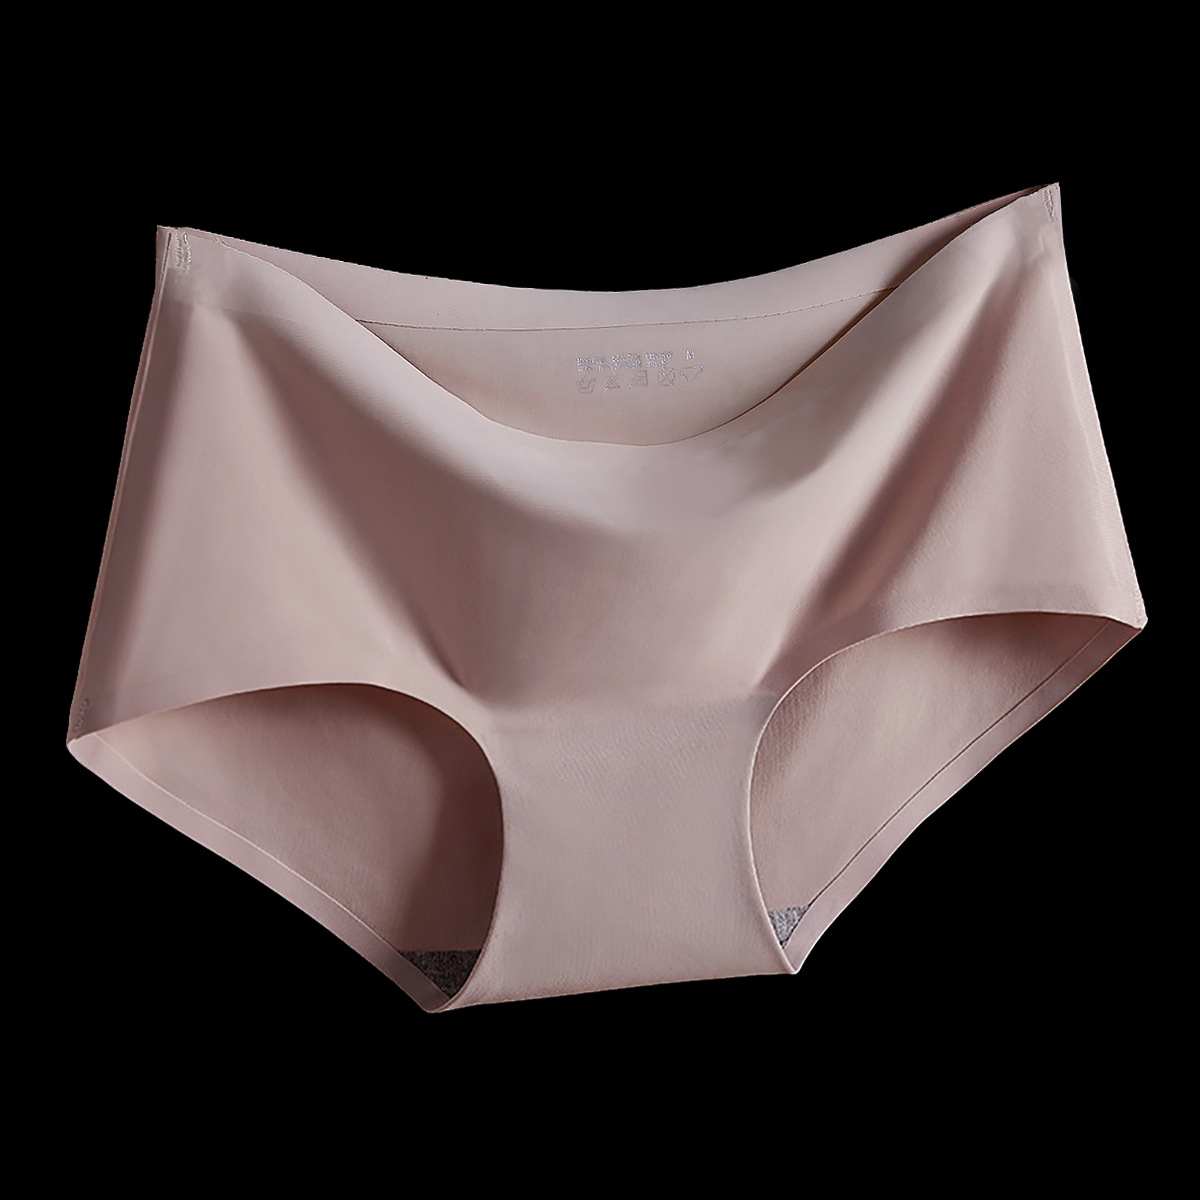 Hot sales waterproof mature women panties